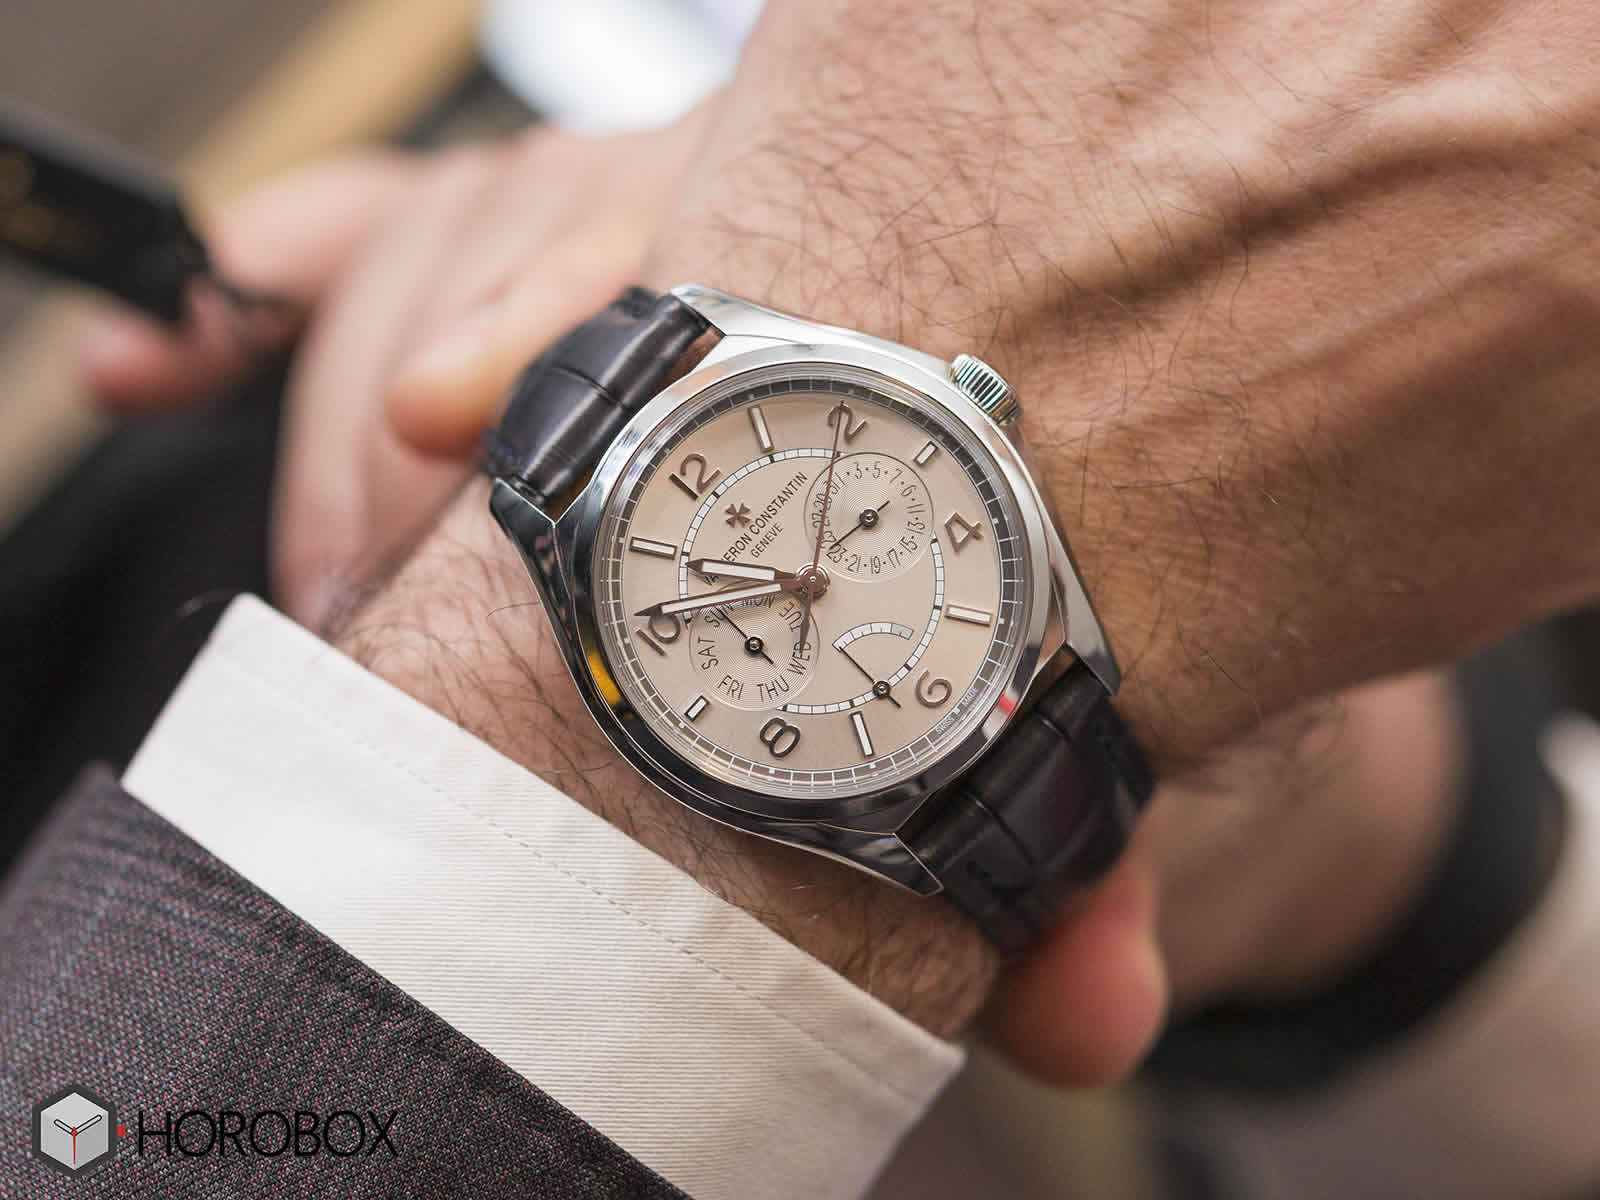 4400e-000a-b437-Vacheron-Constantin-Fifty-Six-Day-Date-1.jpg